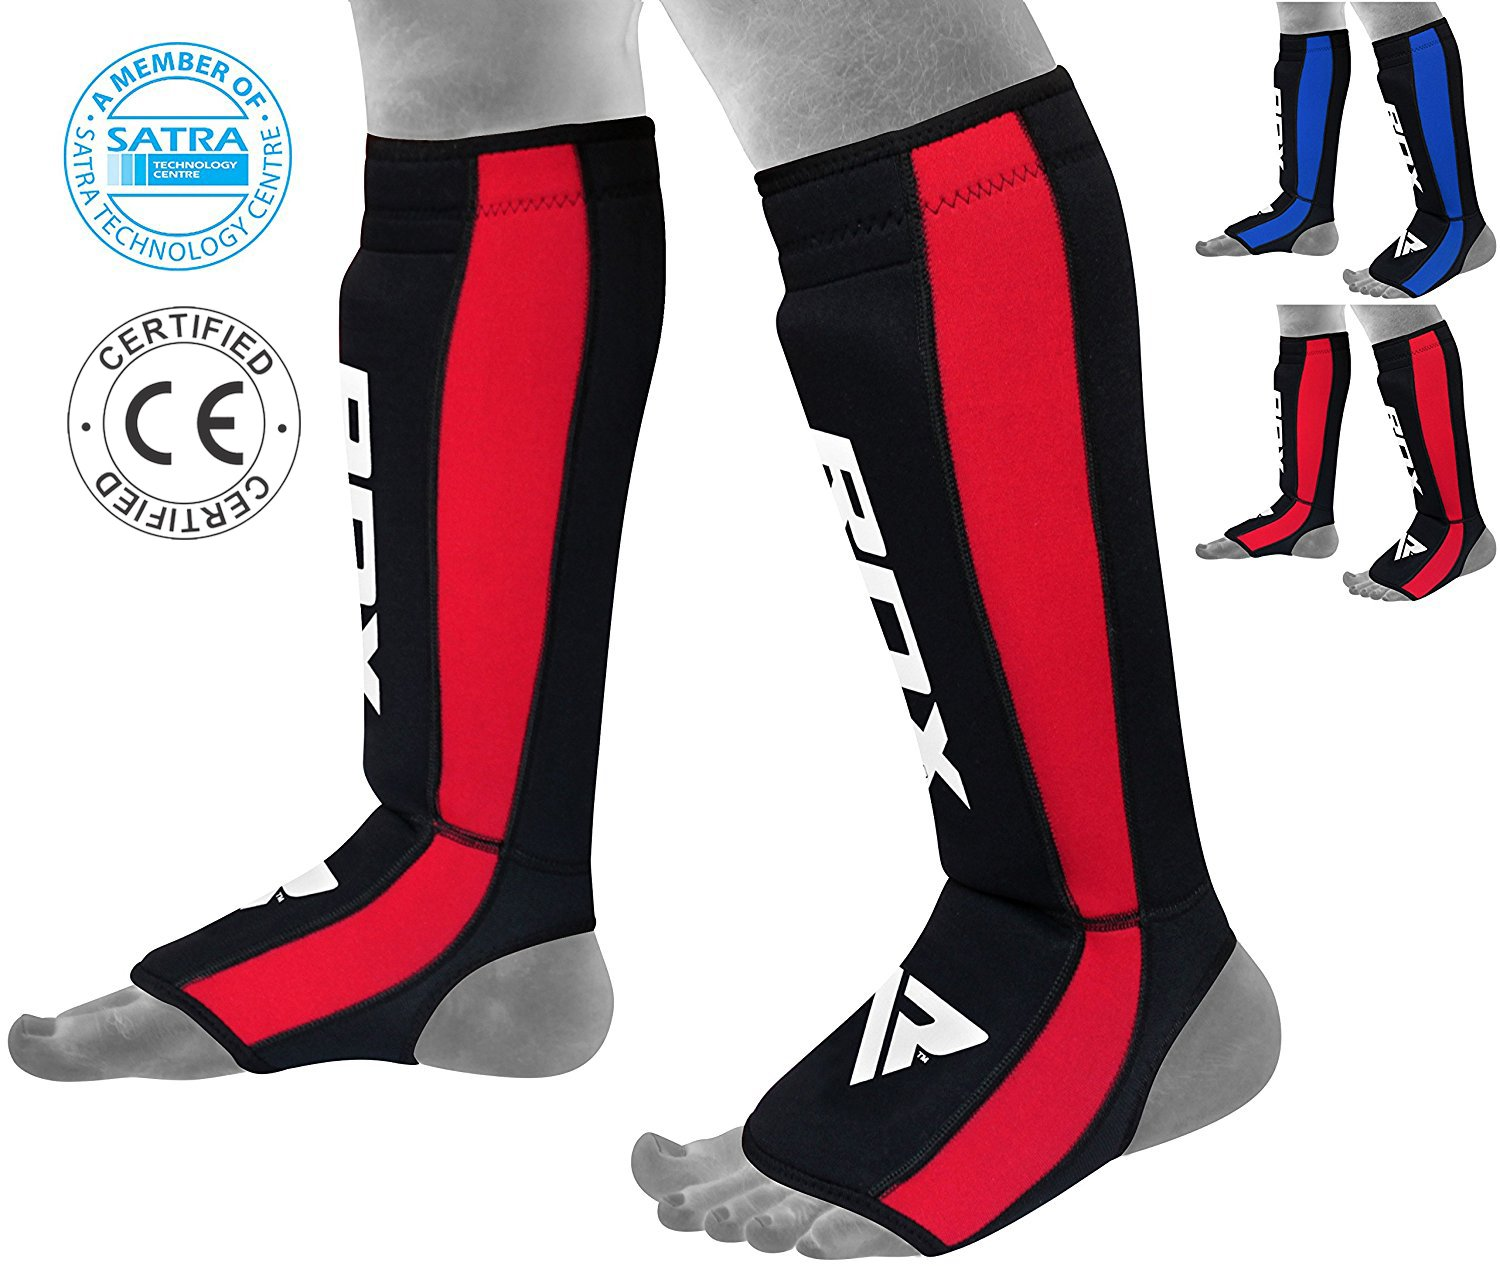 Best Top King Shin Guards - RDX Neoperene MMA Shin Guards